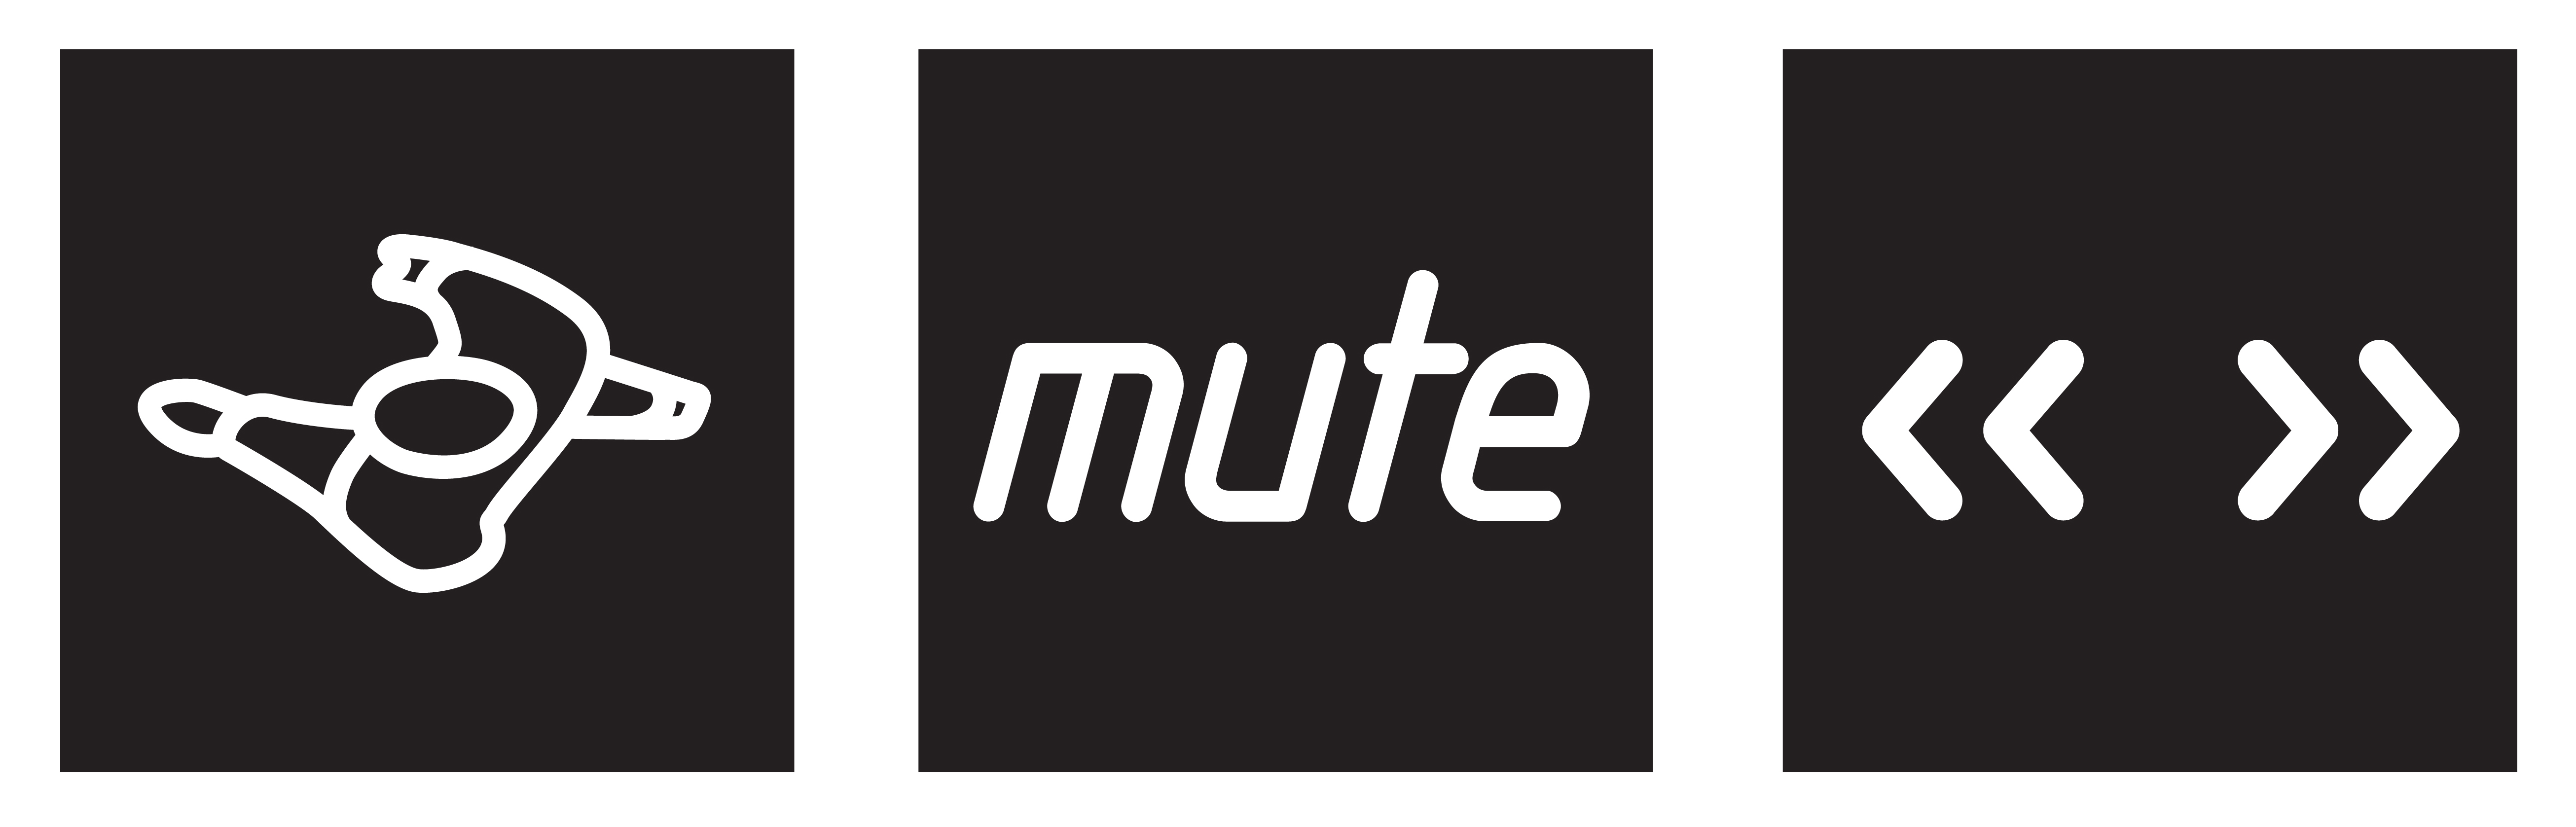 Mute is an independent record label founded in 1978 by Daniel Miller. Mute is home to Goldfrapp, Liars, Moby, M83, Swans,The Knife, Fever Ray, Erasure, CAN, Cabaret Voltaire, Laibach, Ben Frost, Cold...